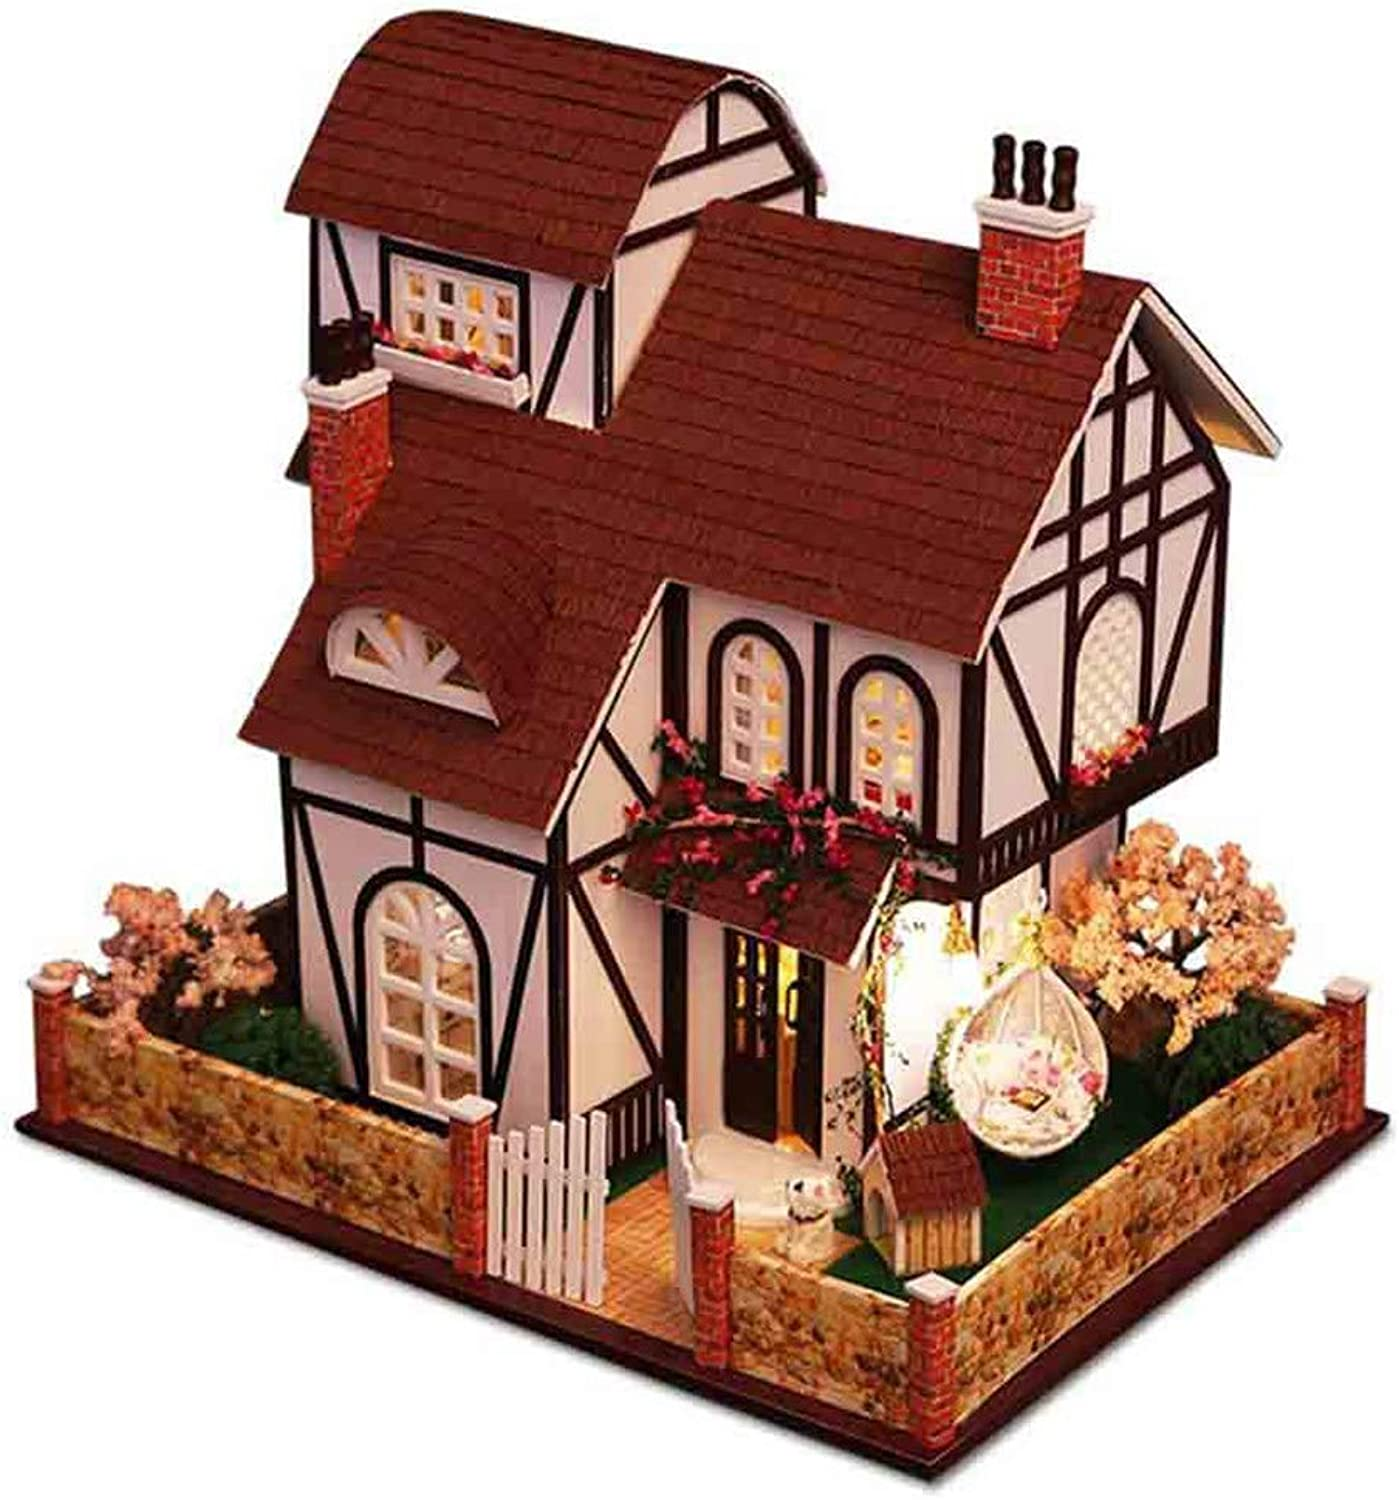 3D Puzzles Wooden Miniature Dollhouse DIY Kit,Flower Town Series model villa,Accessories Dolls Houses With Furniture,LED Light & Music Box,Best Gift for Women and Girls